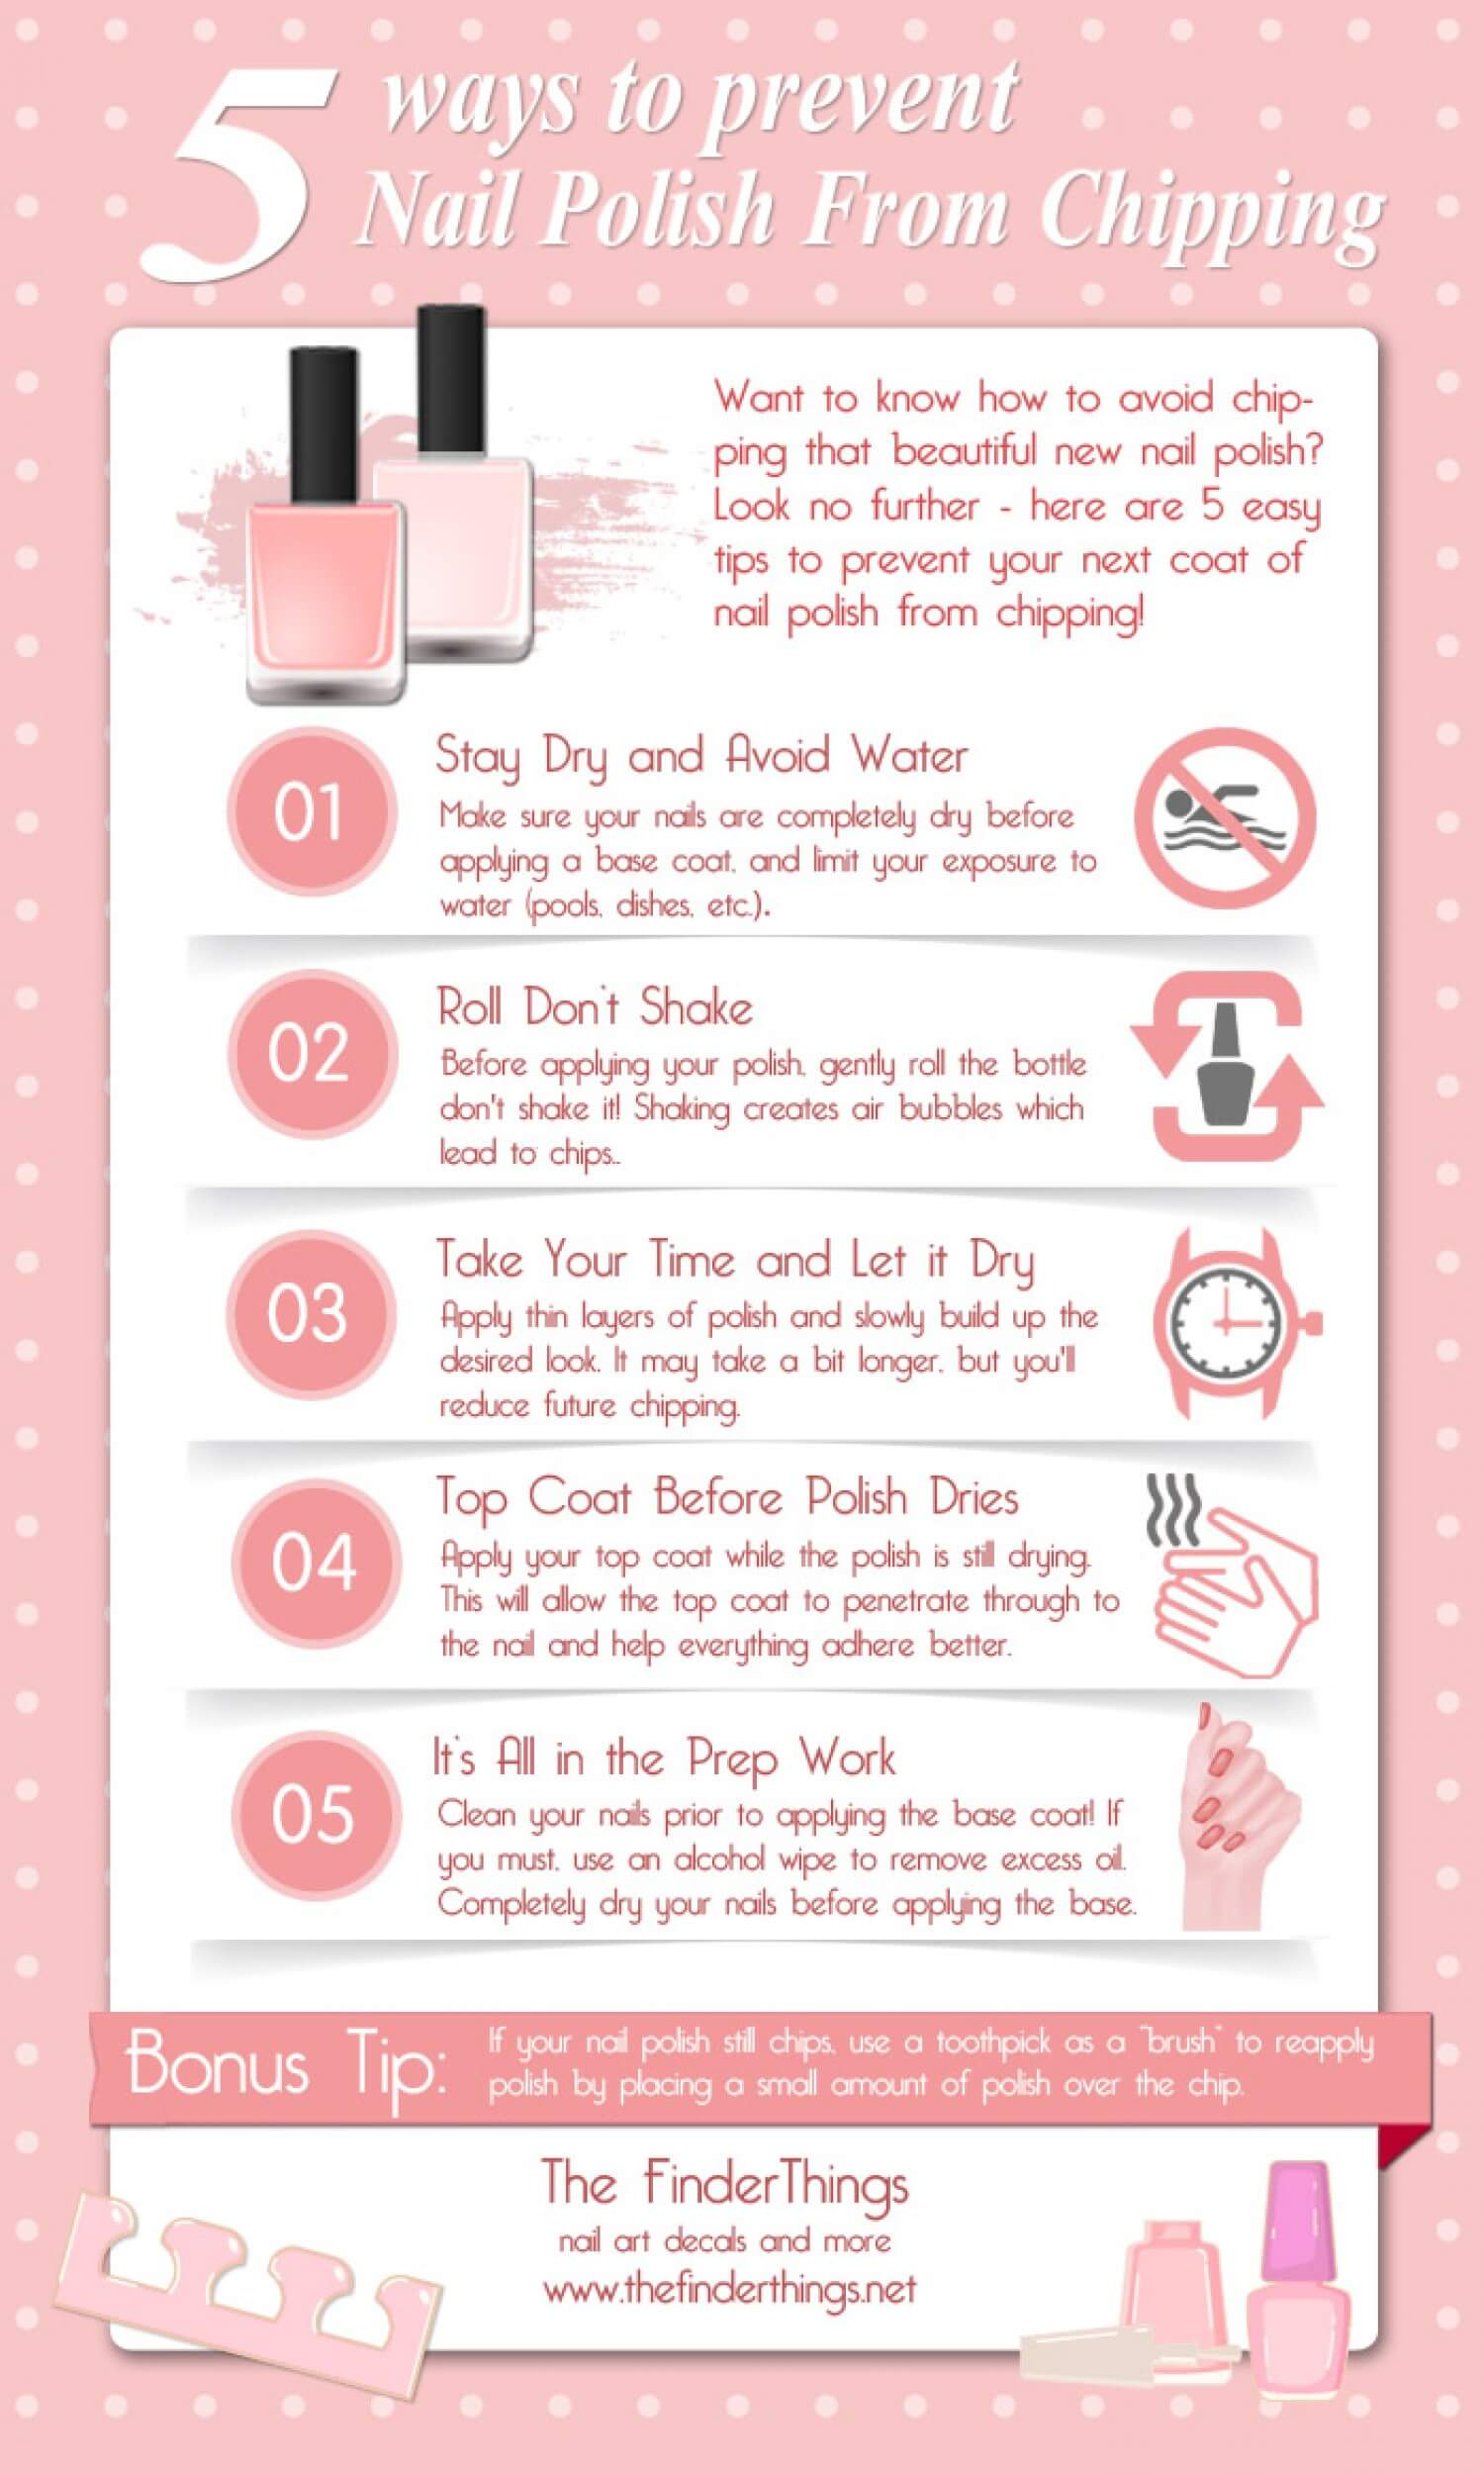 5-ways-to-prevent-nail-polish-from-chipping-by-the-finder-things-via-tipsographic